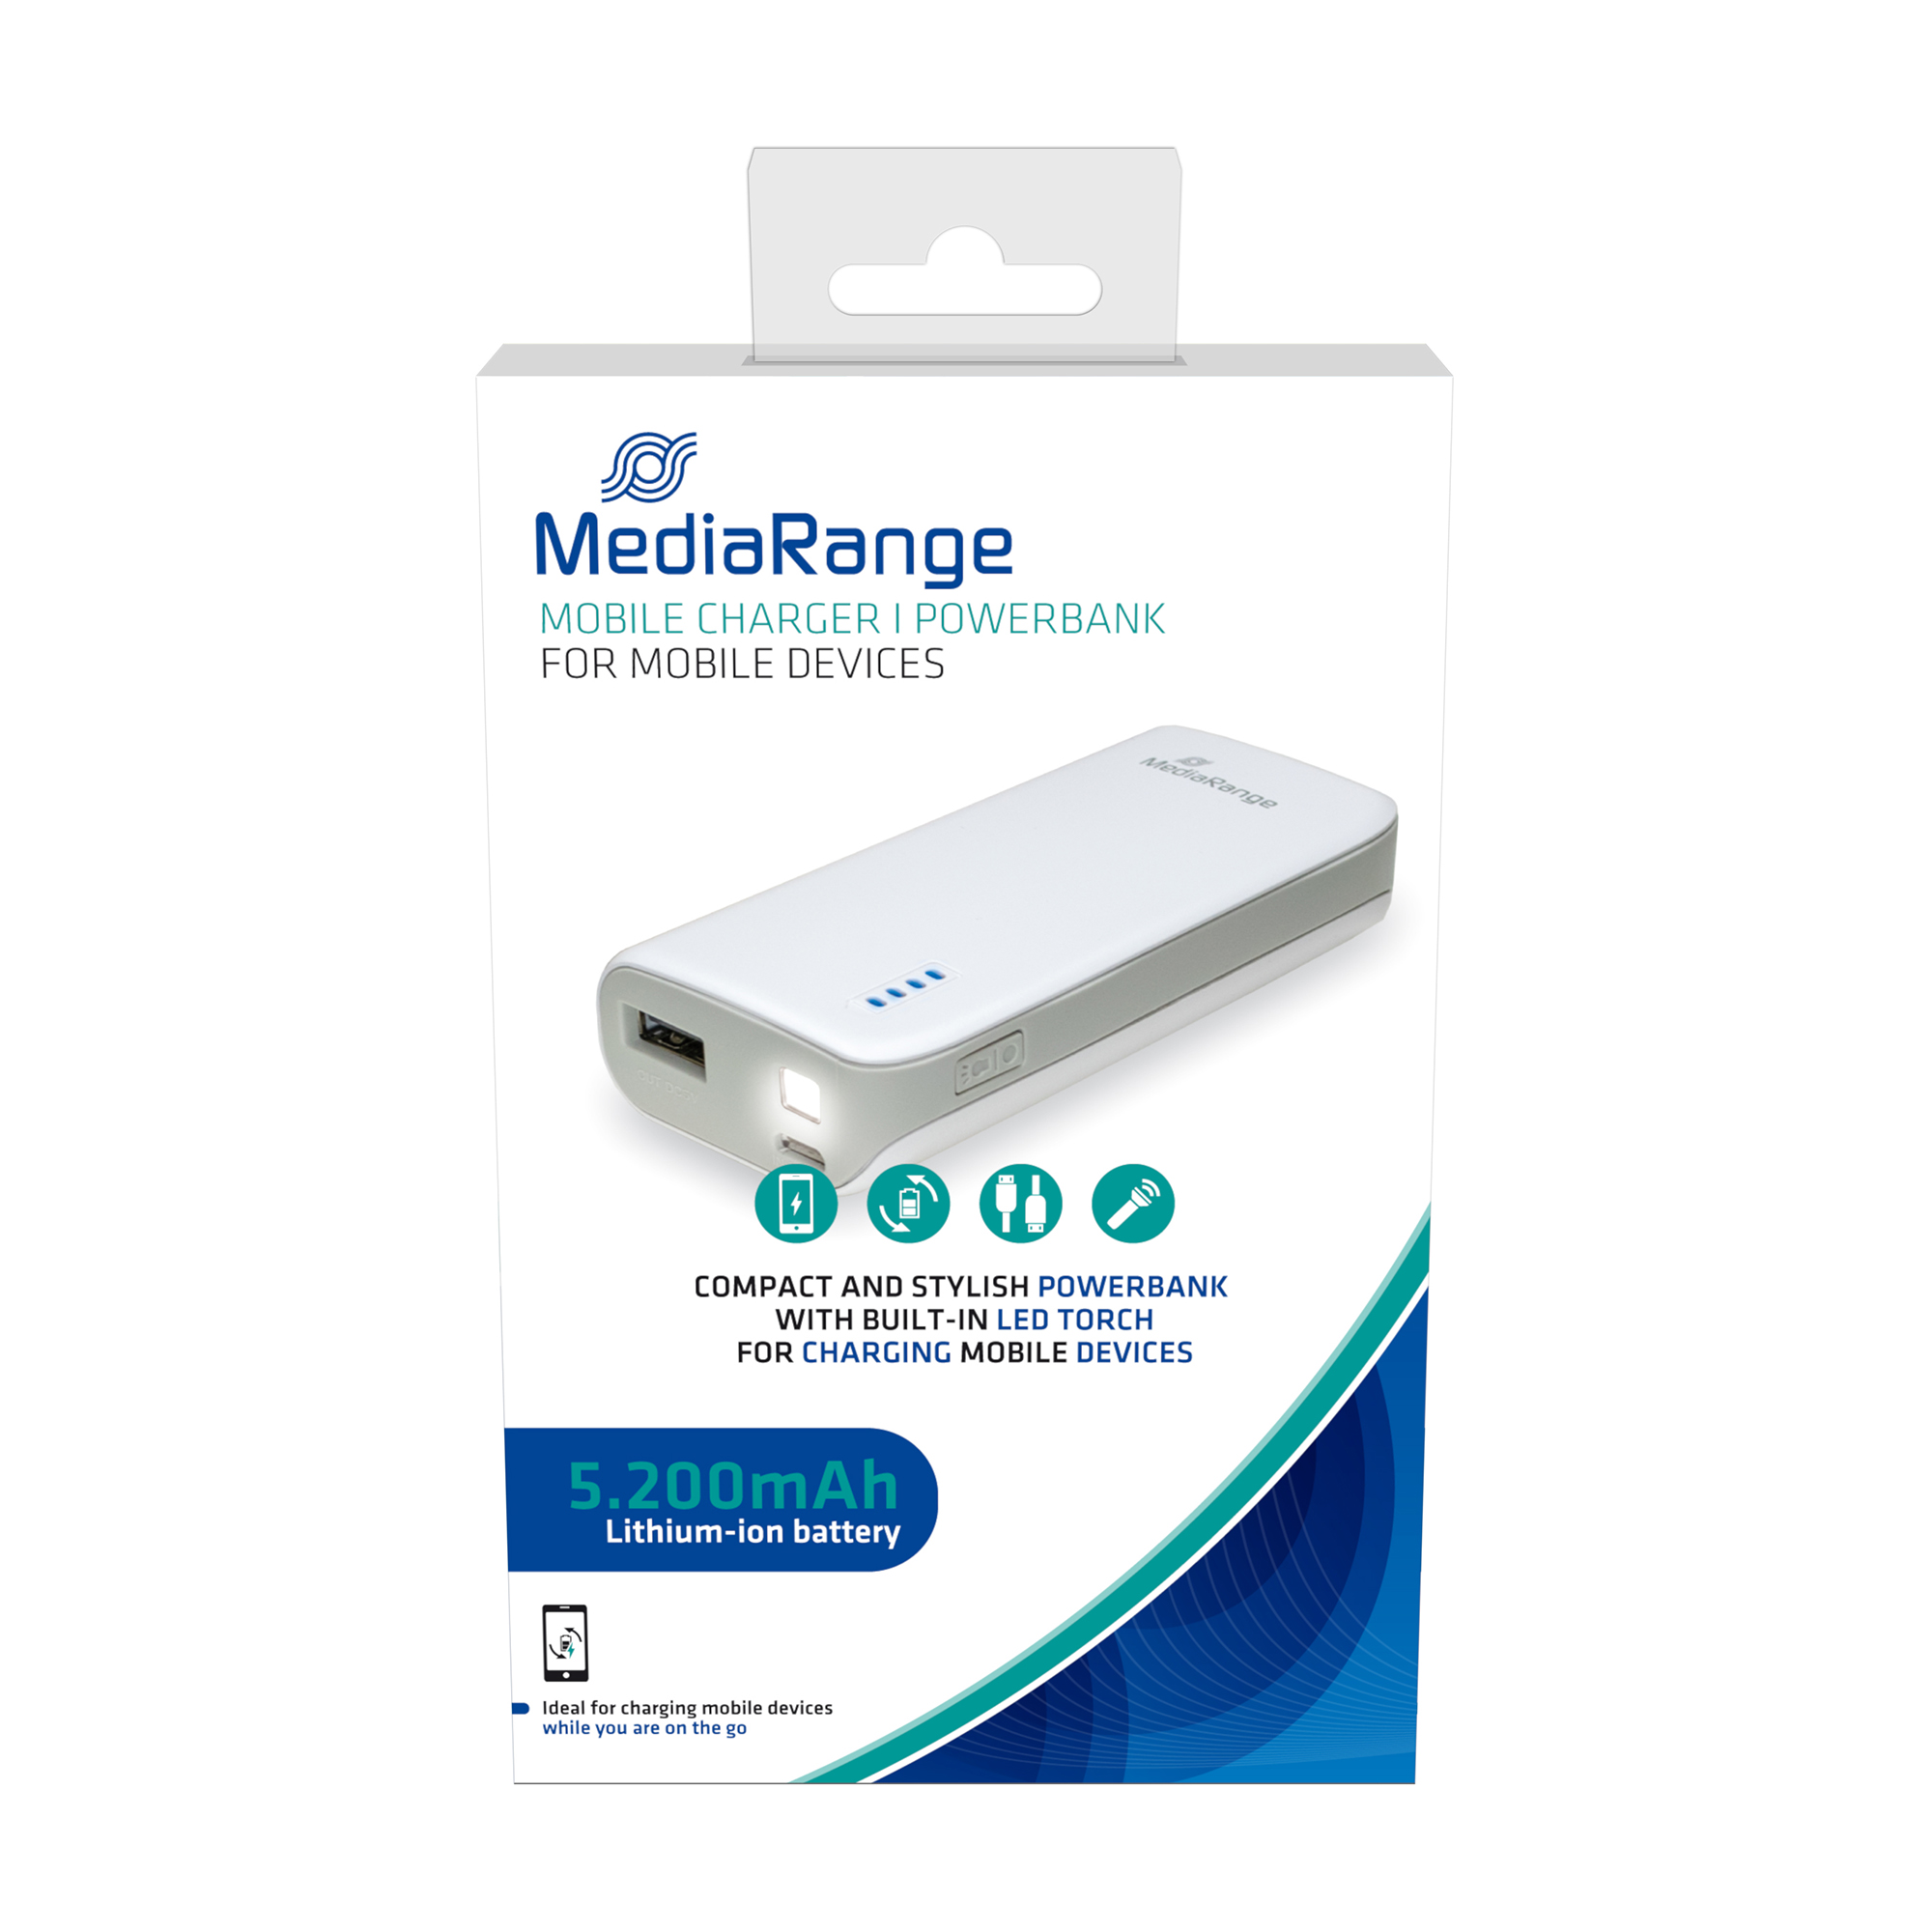 Image for MediaRange Powerbank With Built-in LED Torch 5200 mAh Ref MR751